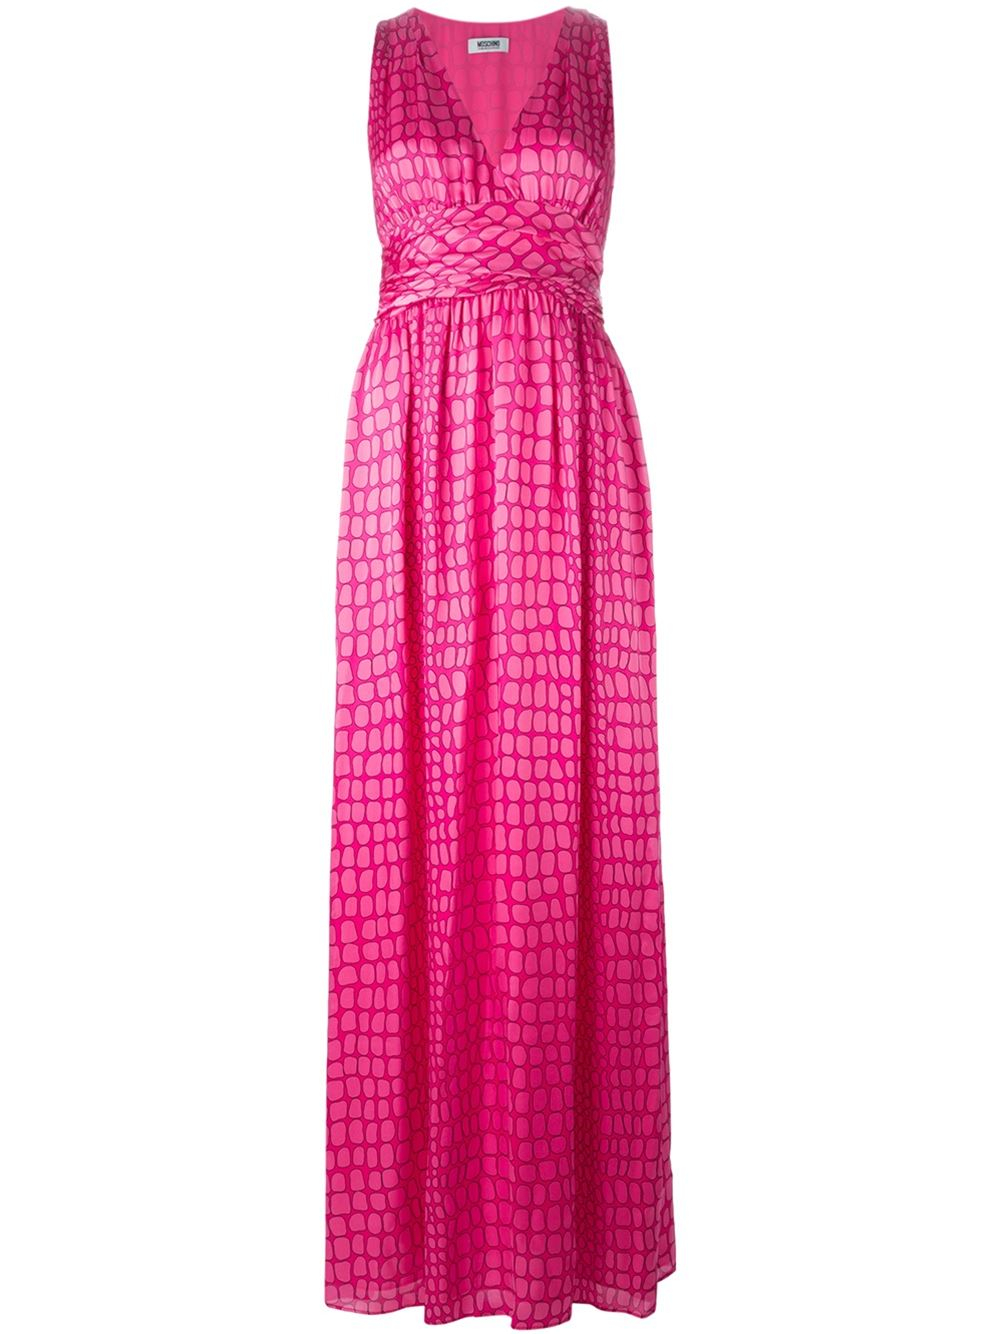 Boutique moschino pebble print long dress in pink pink Inexpensive chic